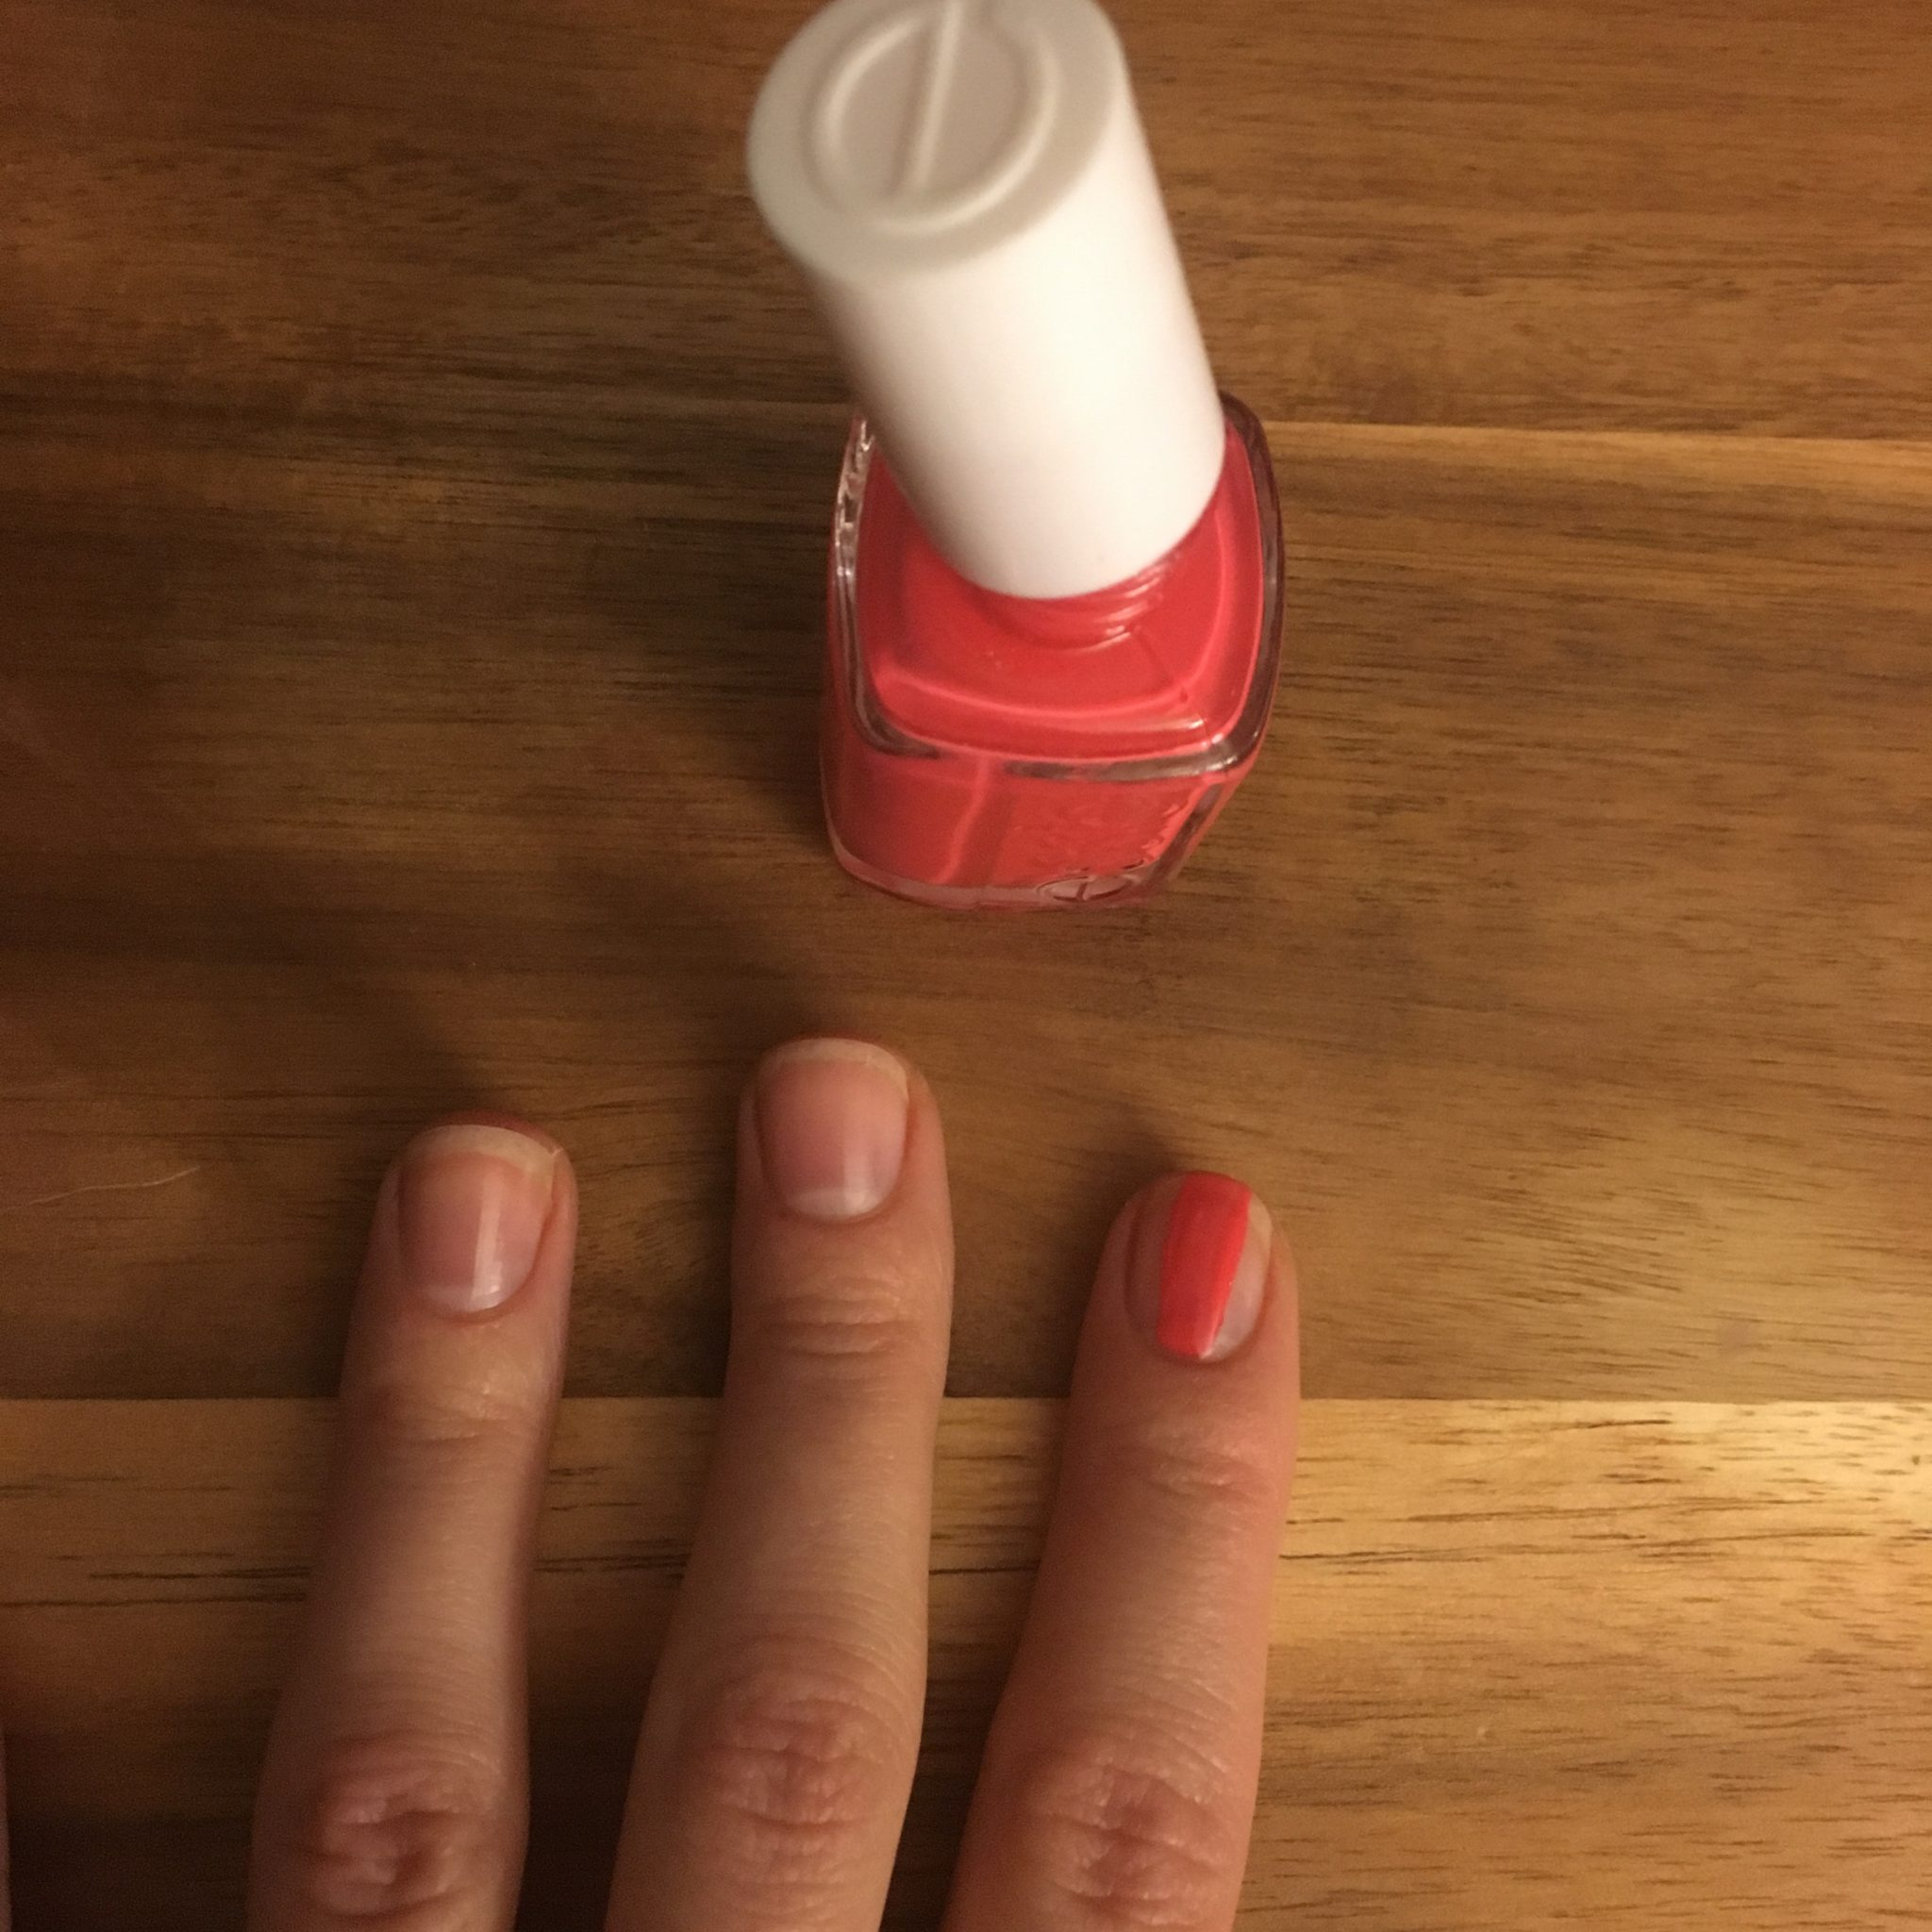 Glass of Glam Nails | At Home Manicure Tips by popular Chicago beauty blog, Glass of Glam: image of a woman's hand next to a bottle of Amazon essie Nail Polish, Glossy Shine Finish, Peach Daiquiri.